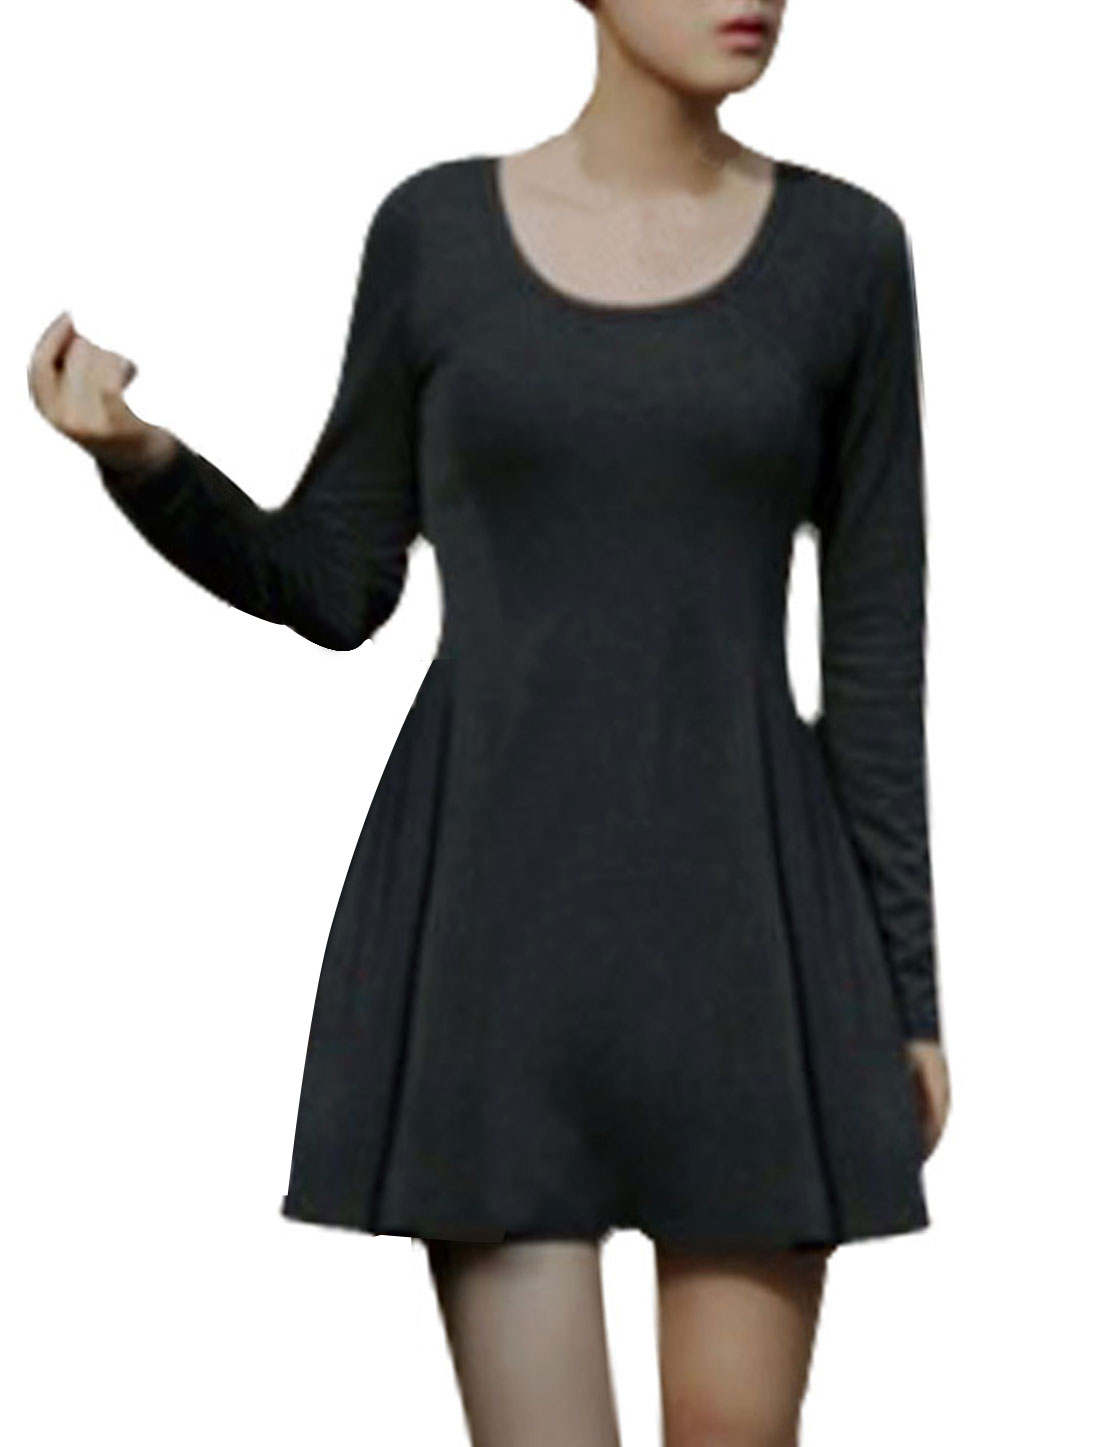 Lady Gray Scoop Neck Long Sleeve Form-fitting Ribbing Design Mini Dress XS